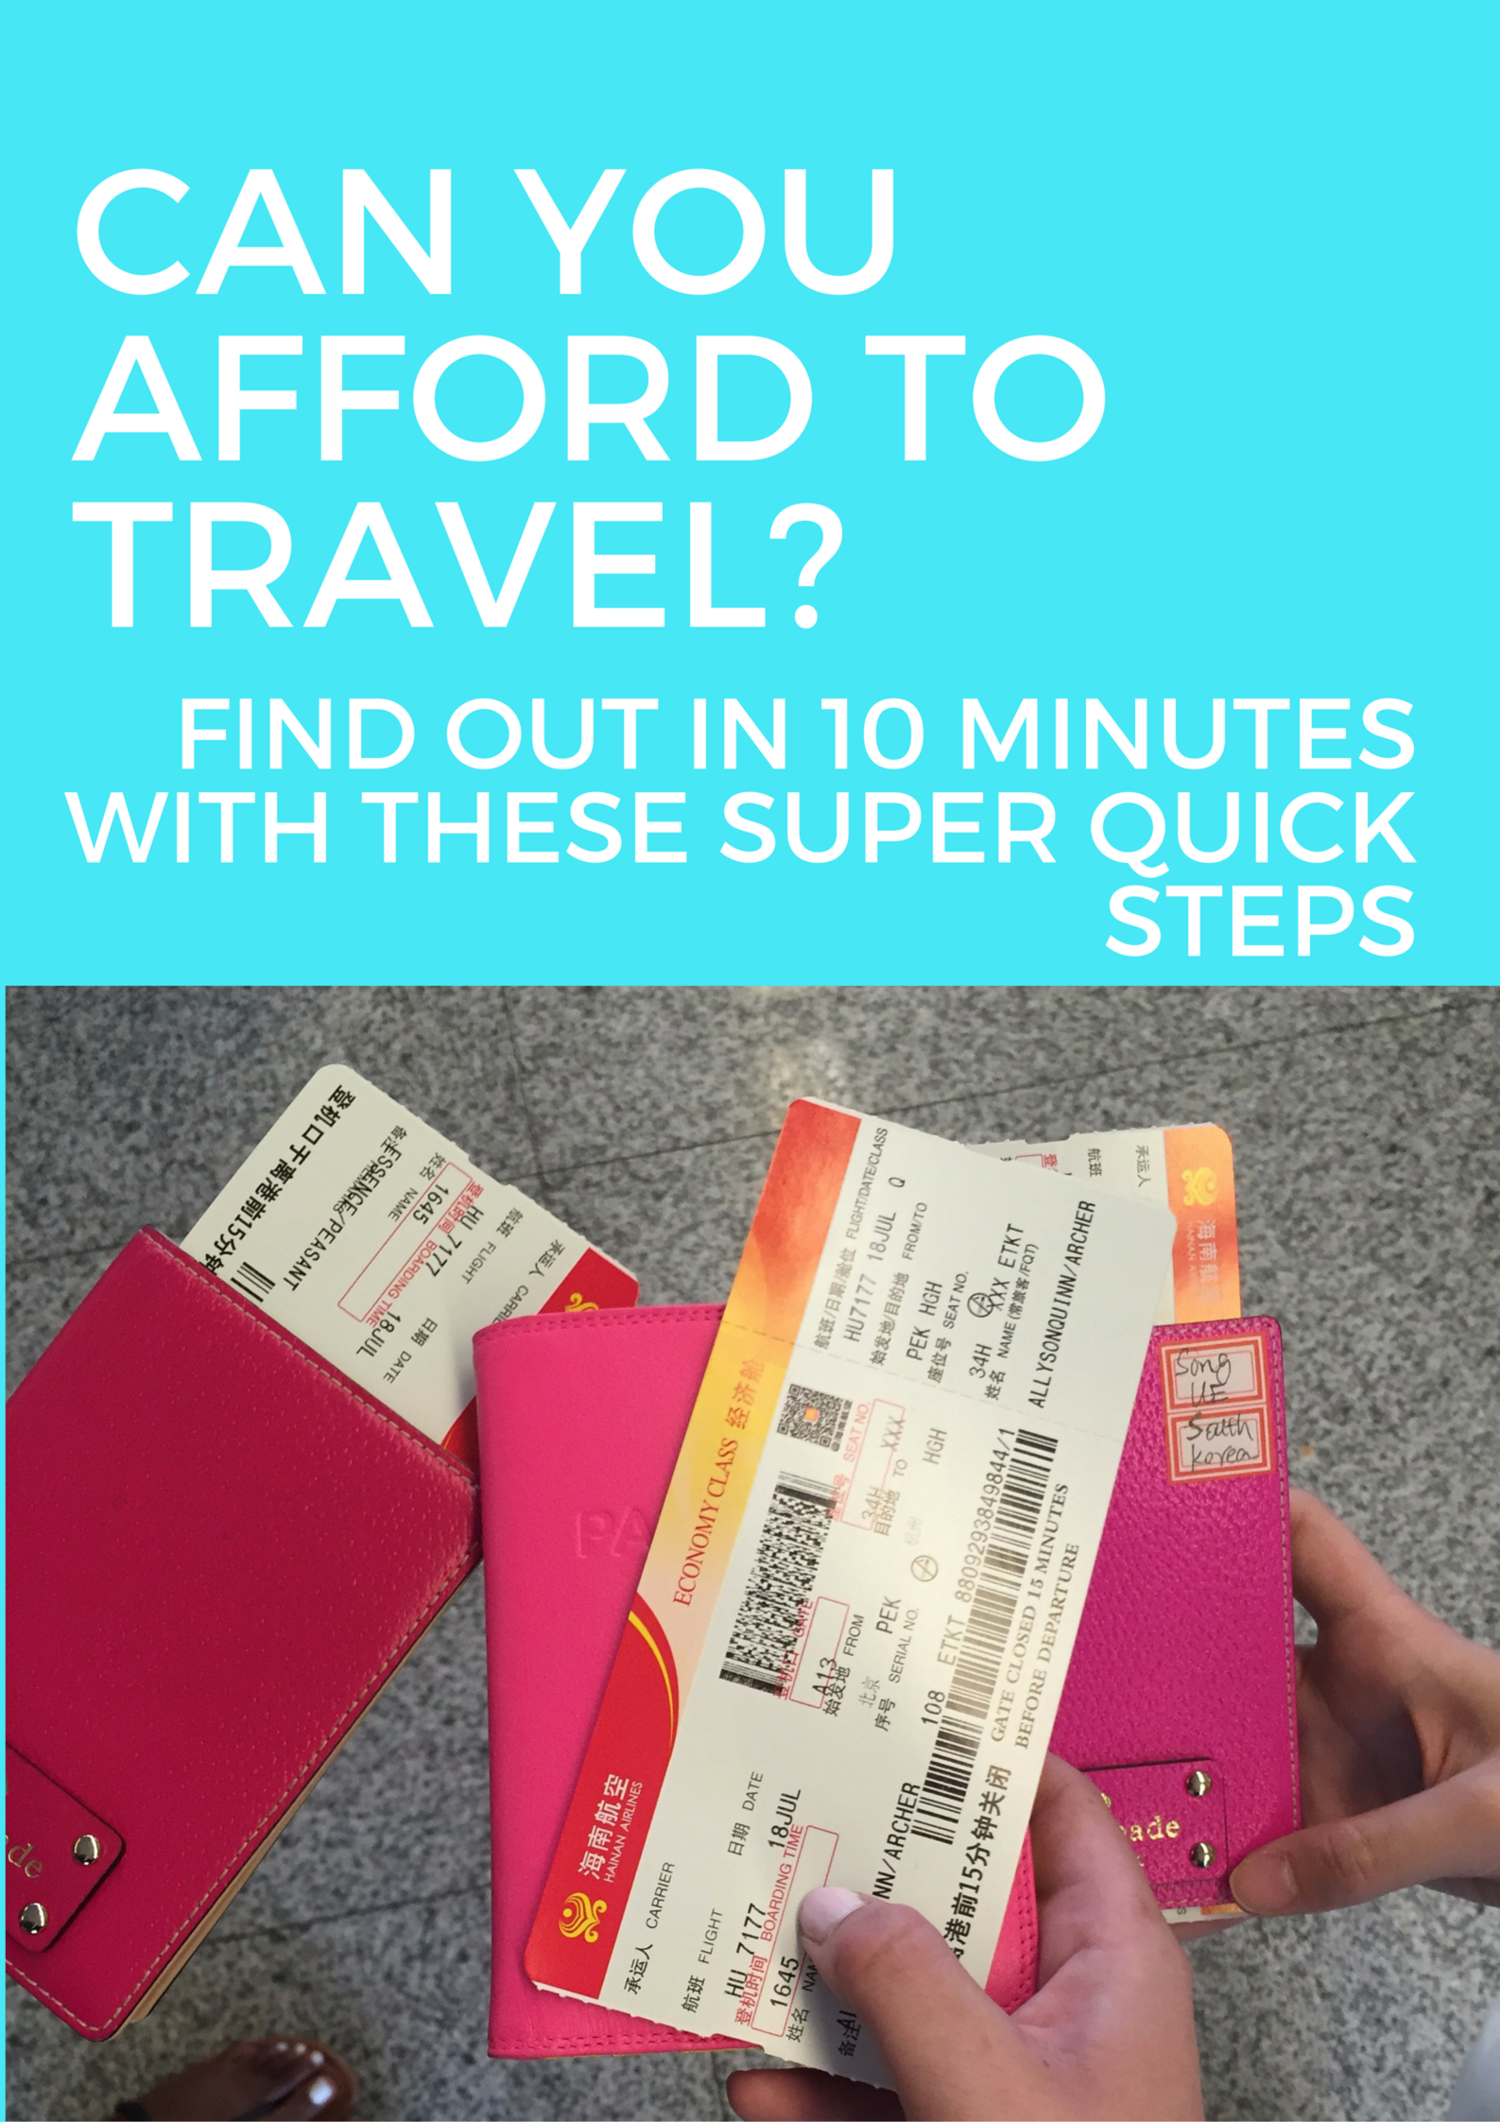 all you need is 10 minutes to see if you can afford to travel